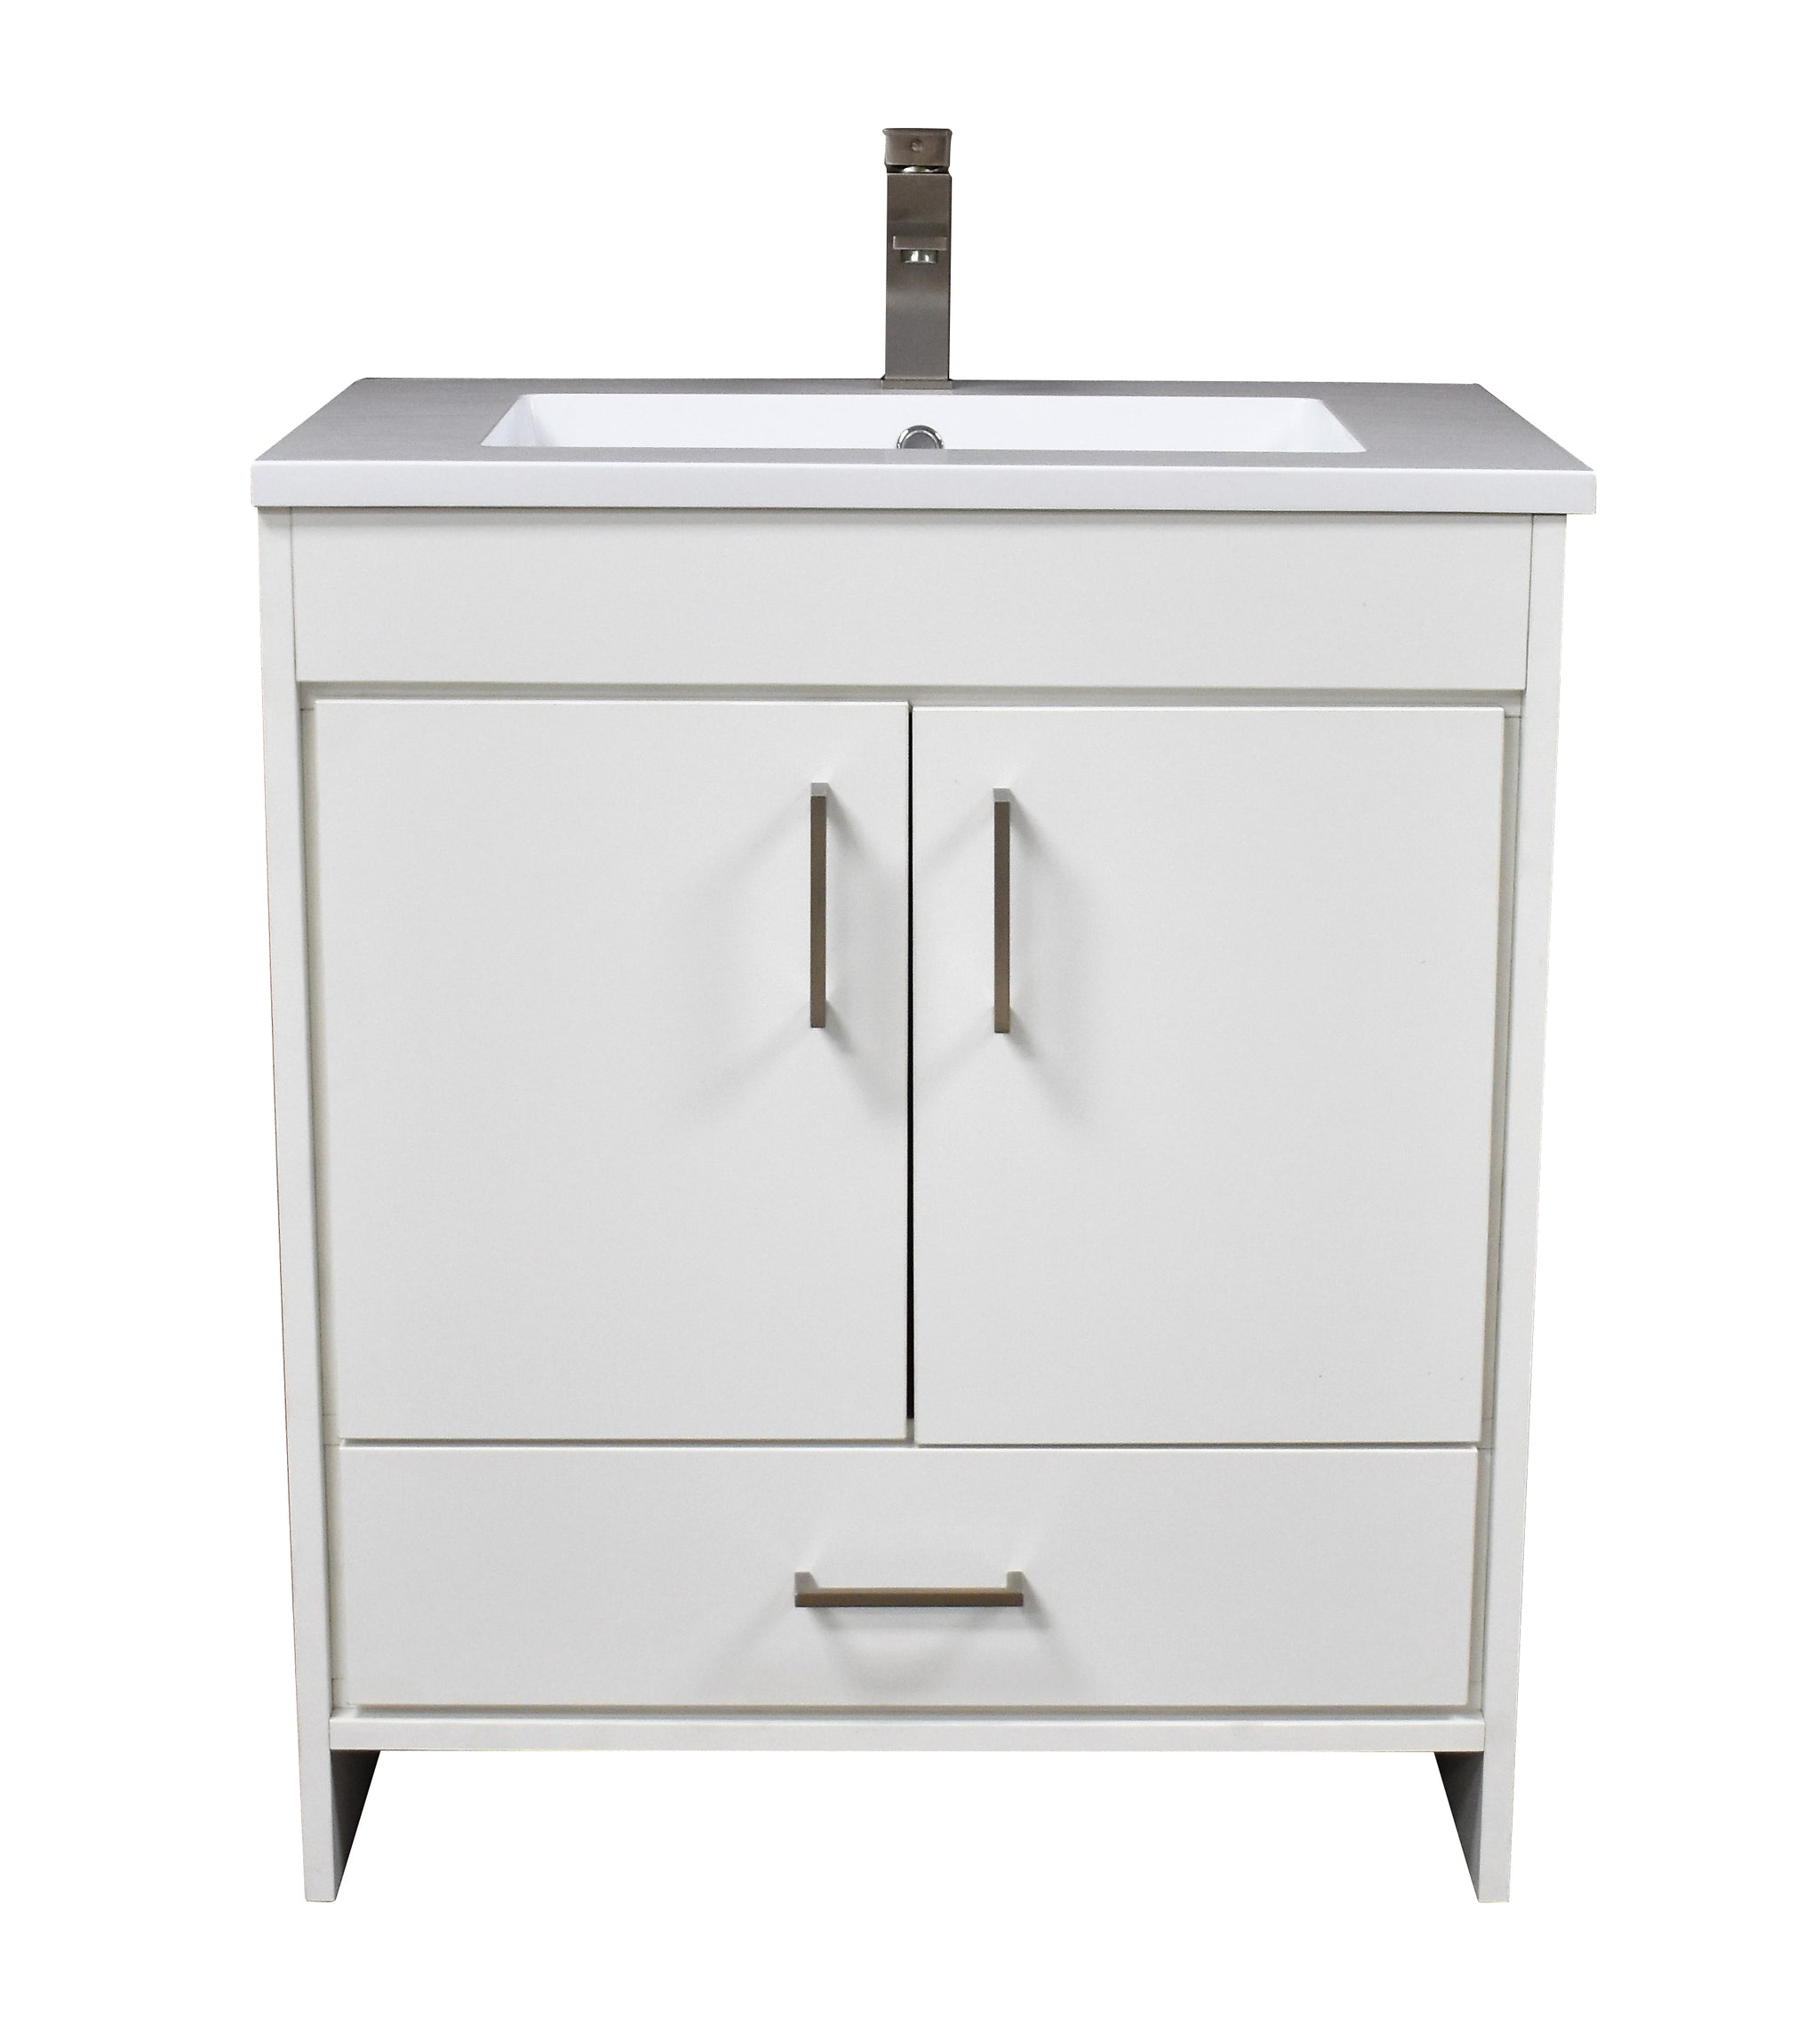 "Rio 30"" Modern Bathroom Vanity in White with Acrylic Top and Brushed Nickel Handles"